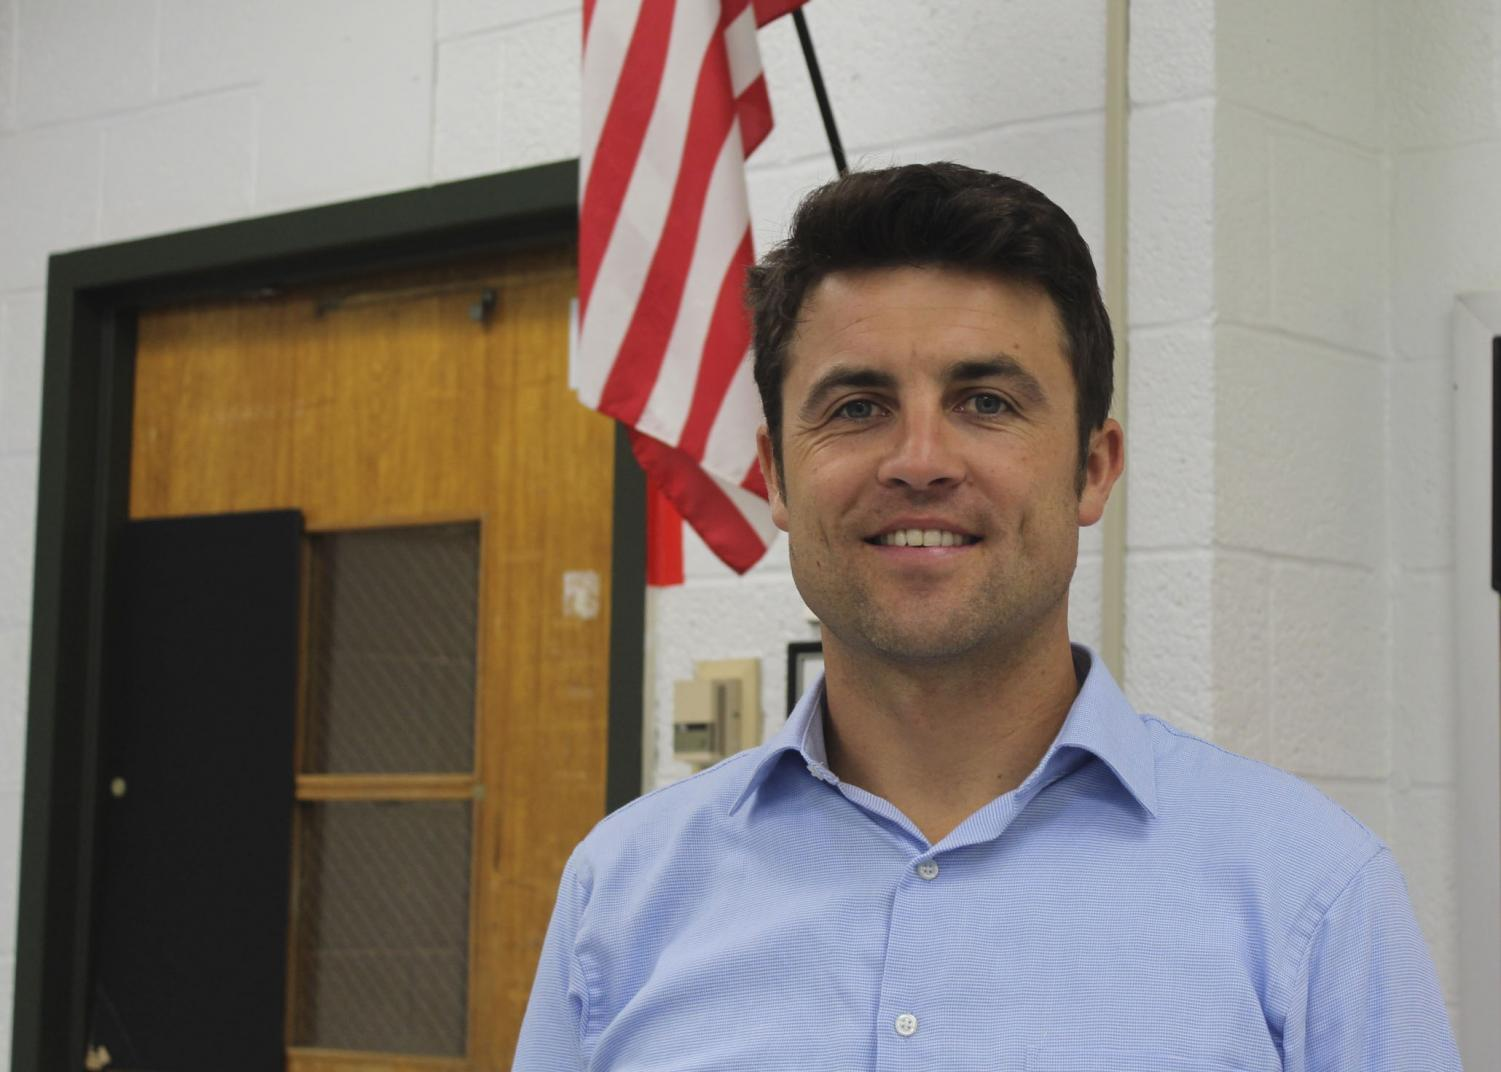 Mr. Daniel Phillips is one of PV's new teachers this year.